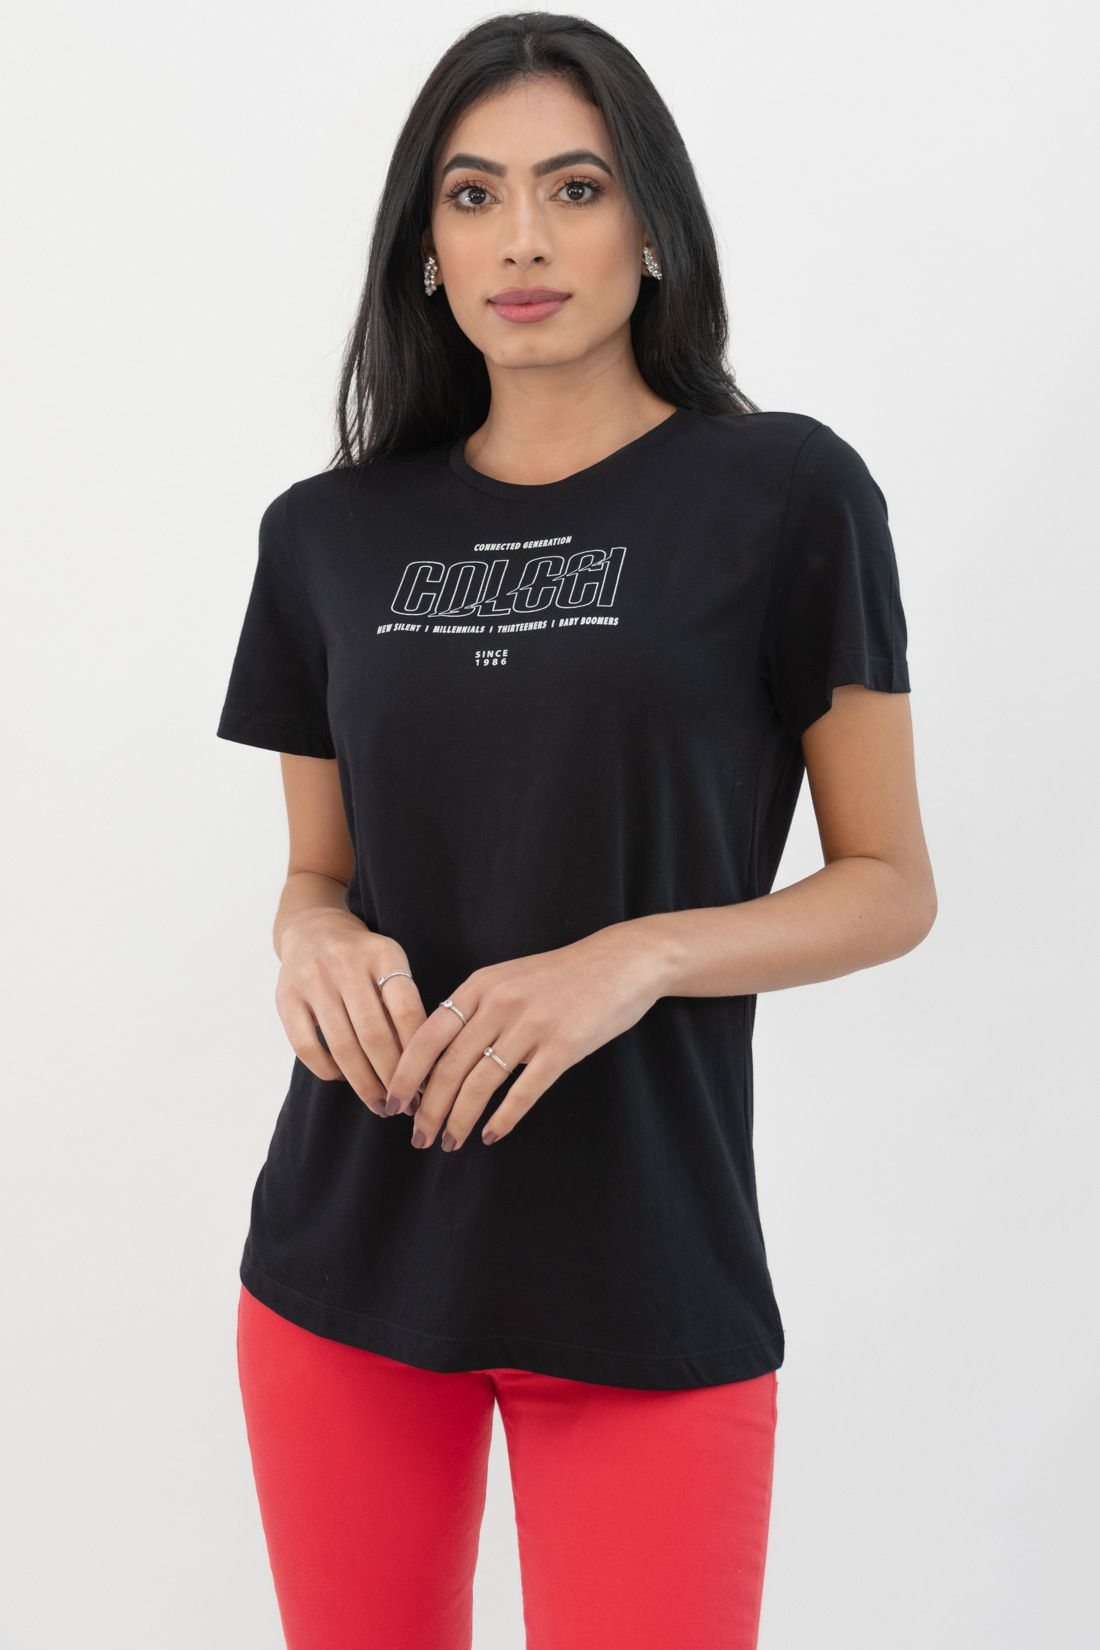 T Shirt Colcci Connected Generation